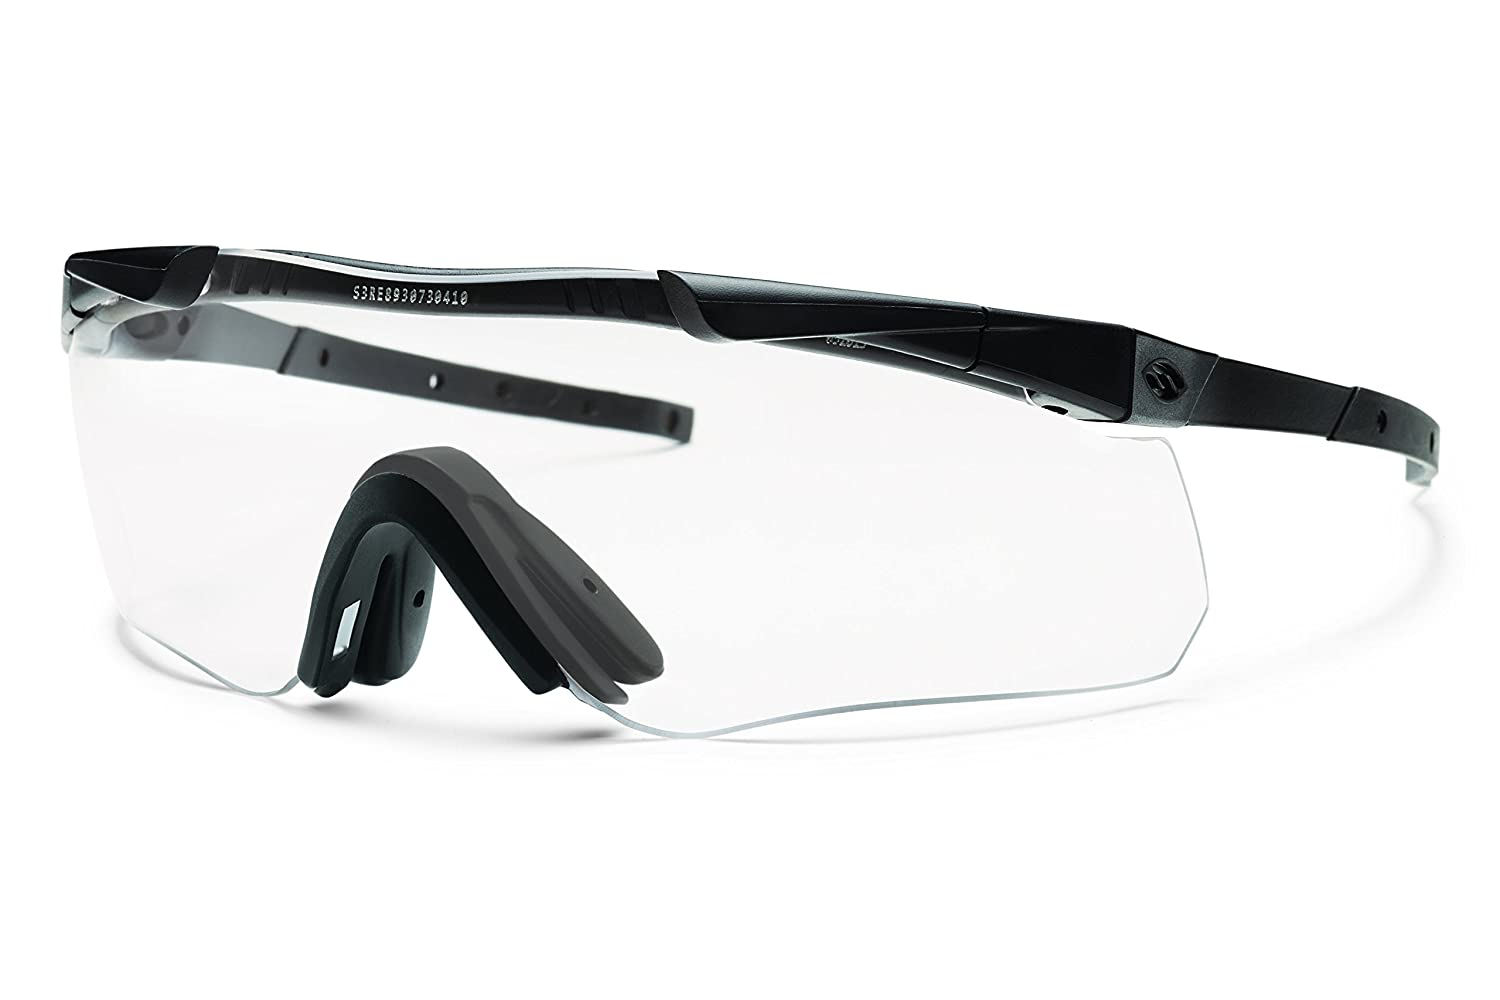 Smith Optics 2015 Aegis Echo II Elite Tactical Eyeshields - Asian Fit